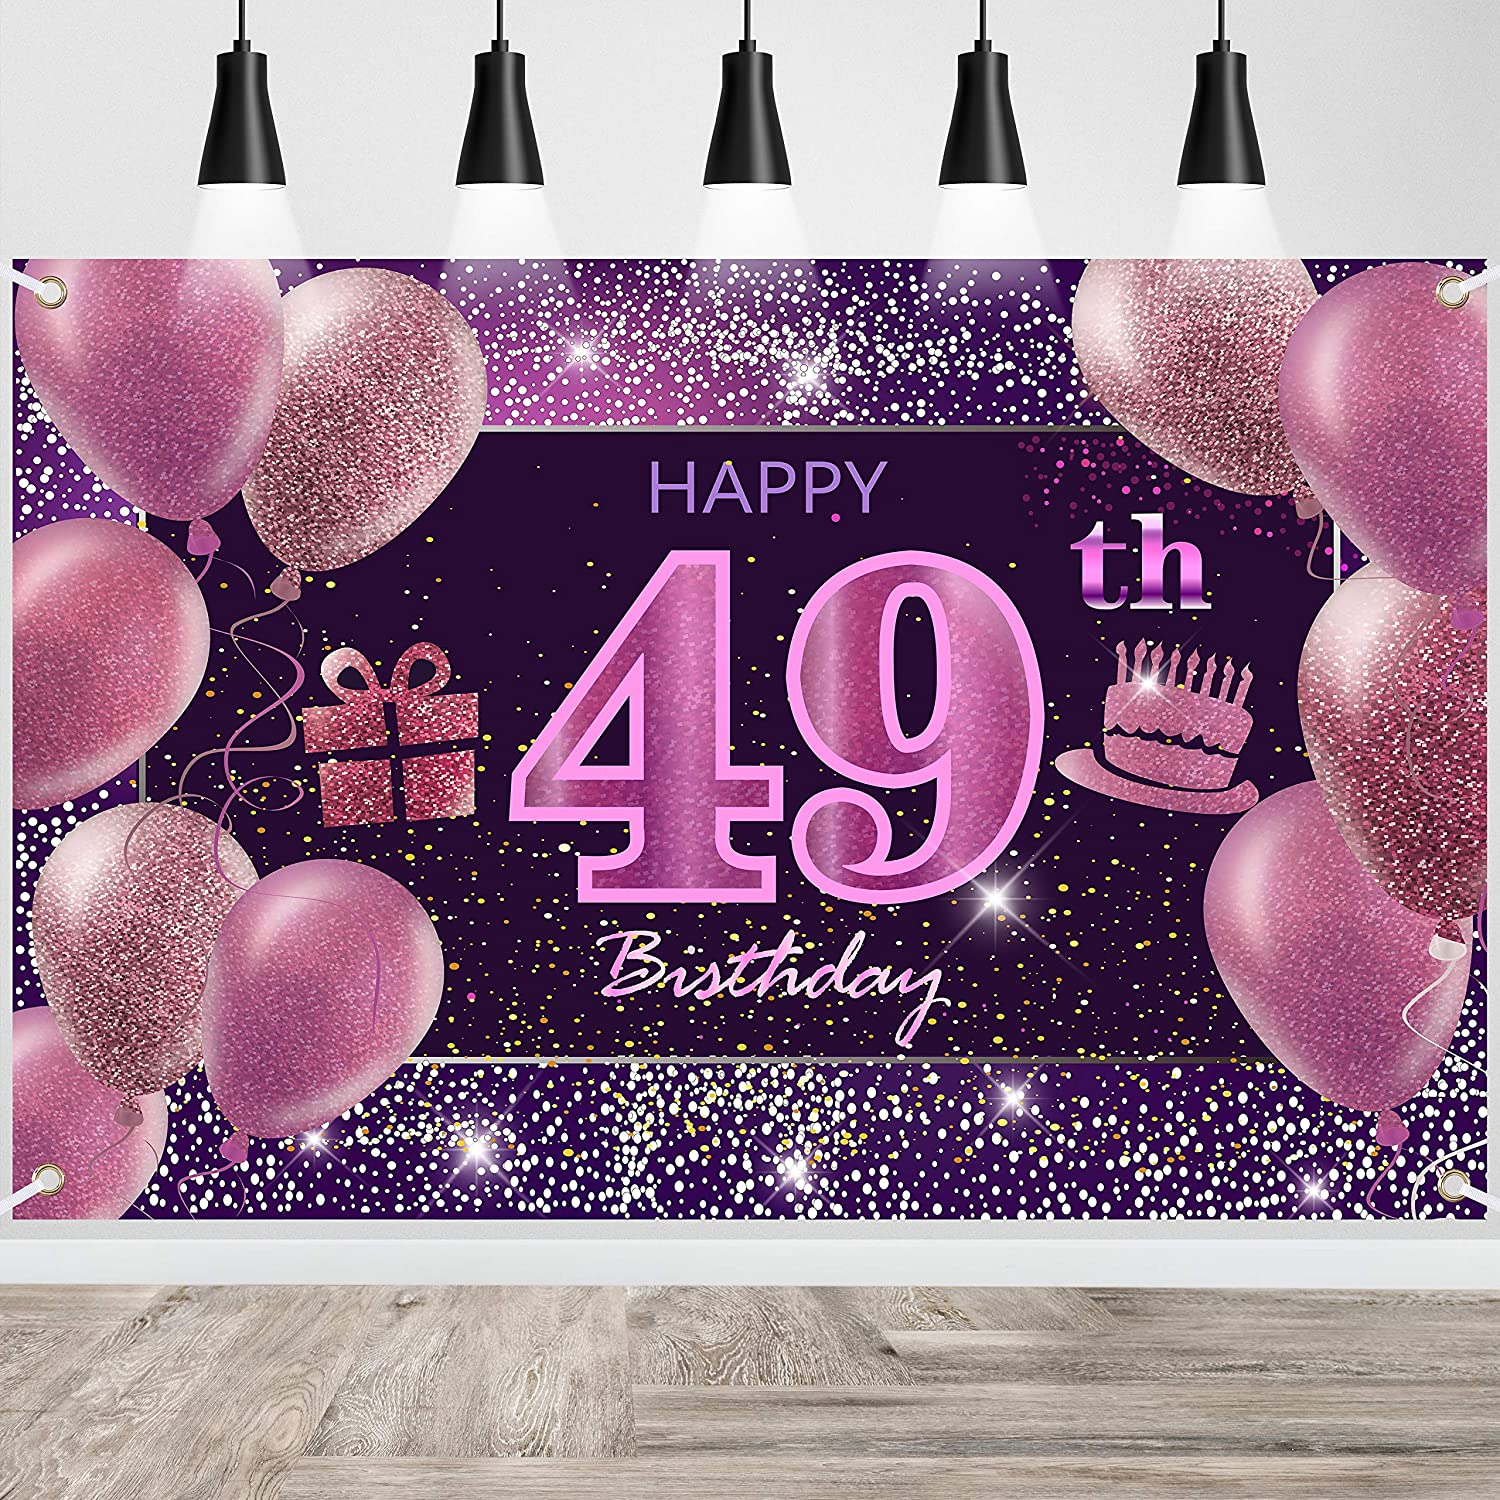 IMISI 49th Birthday Decorations for Girls Happy Birthday Banner Pink Decorations for A Party Birthday Backdrop for Women